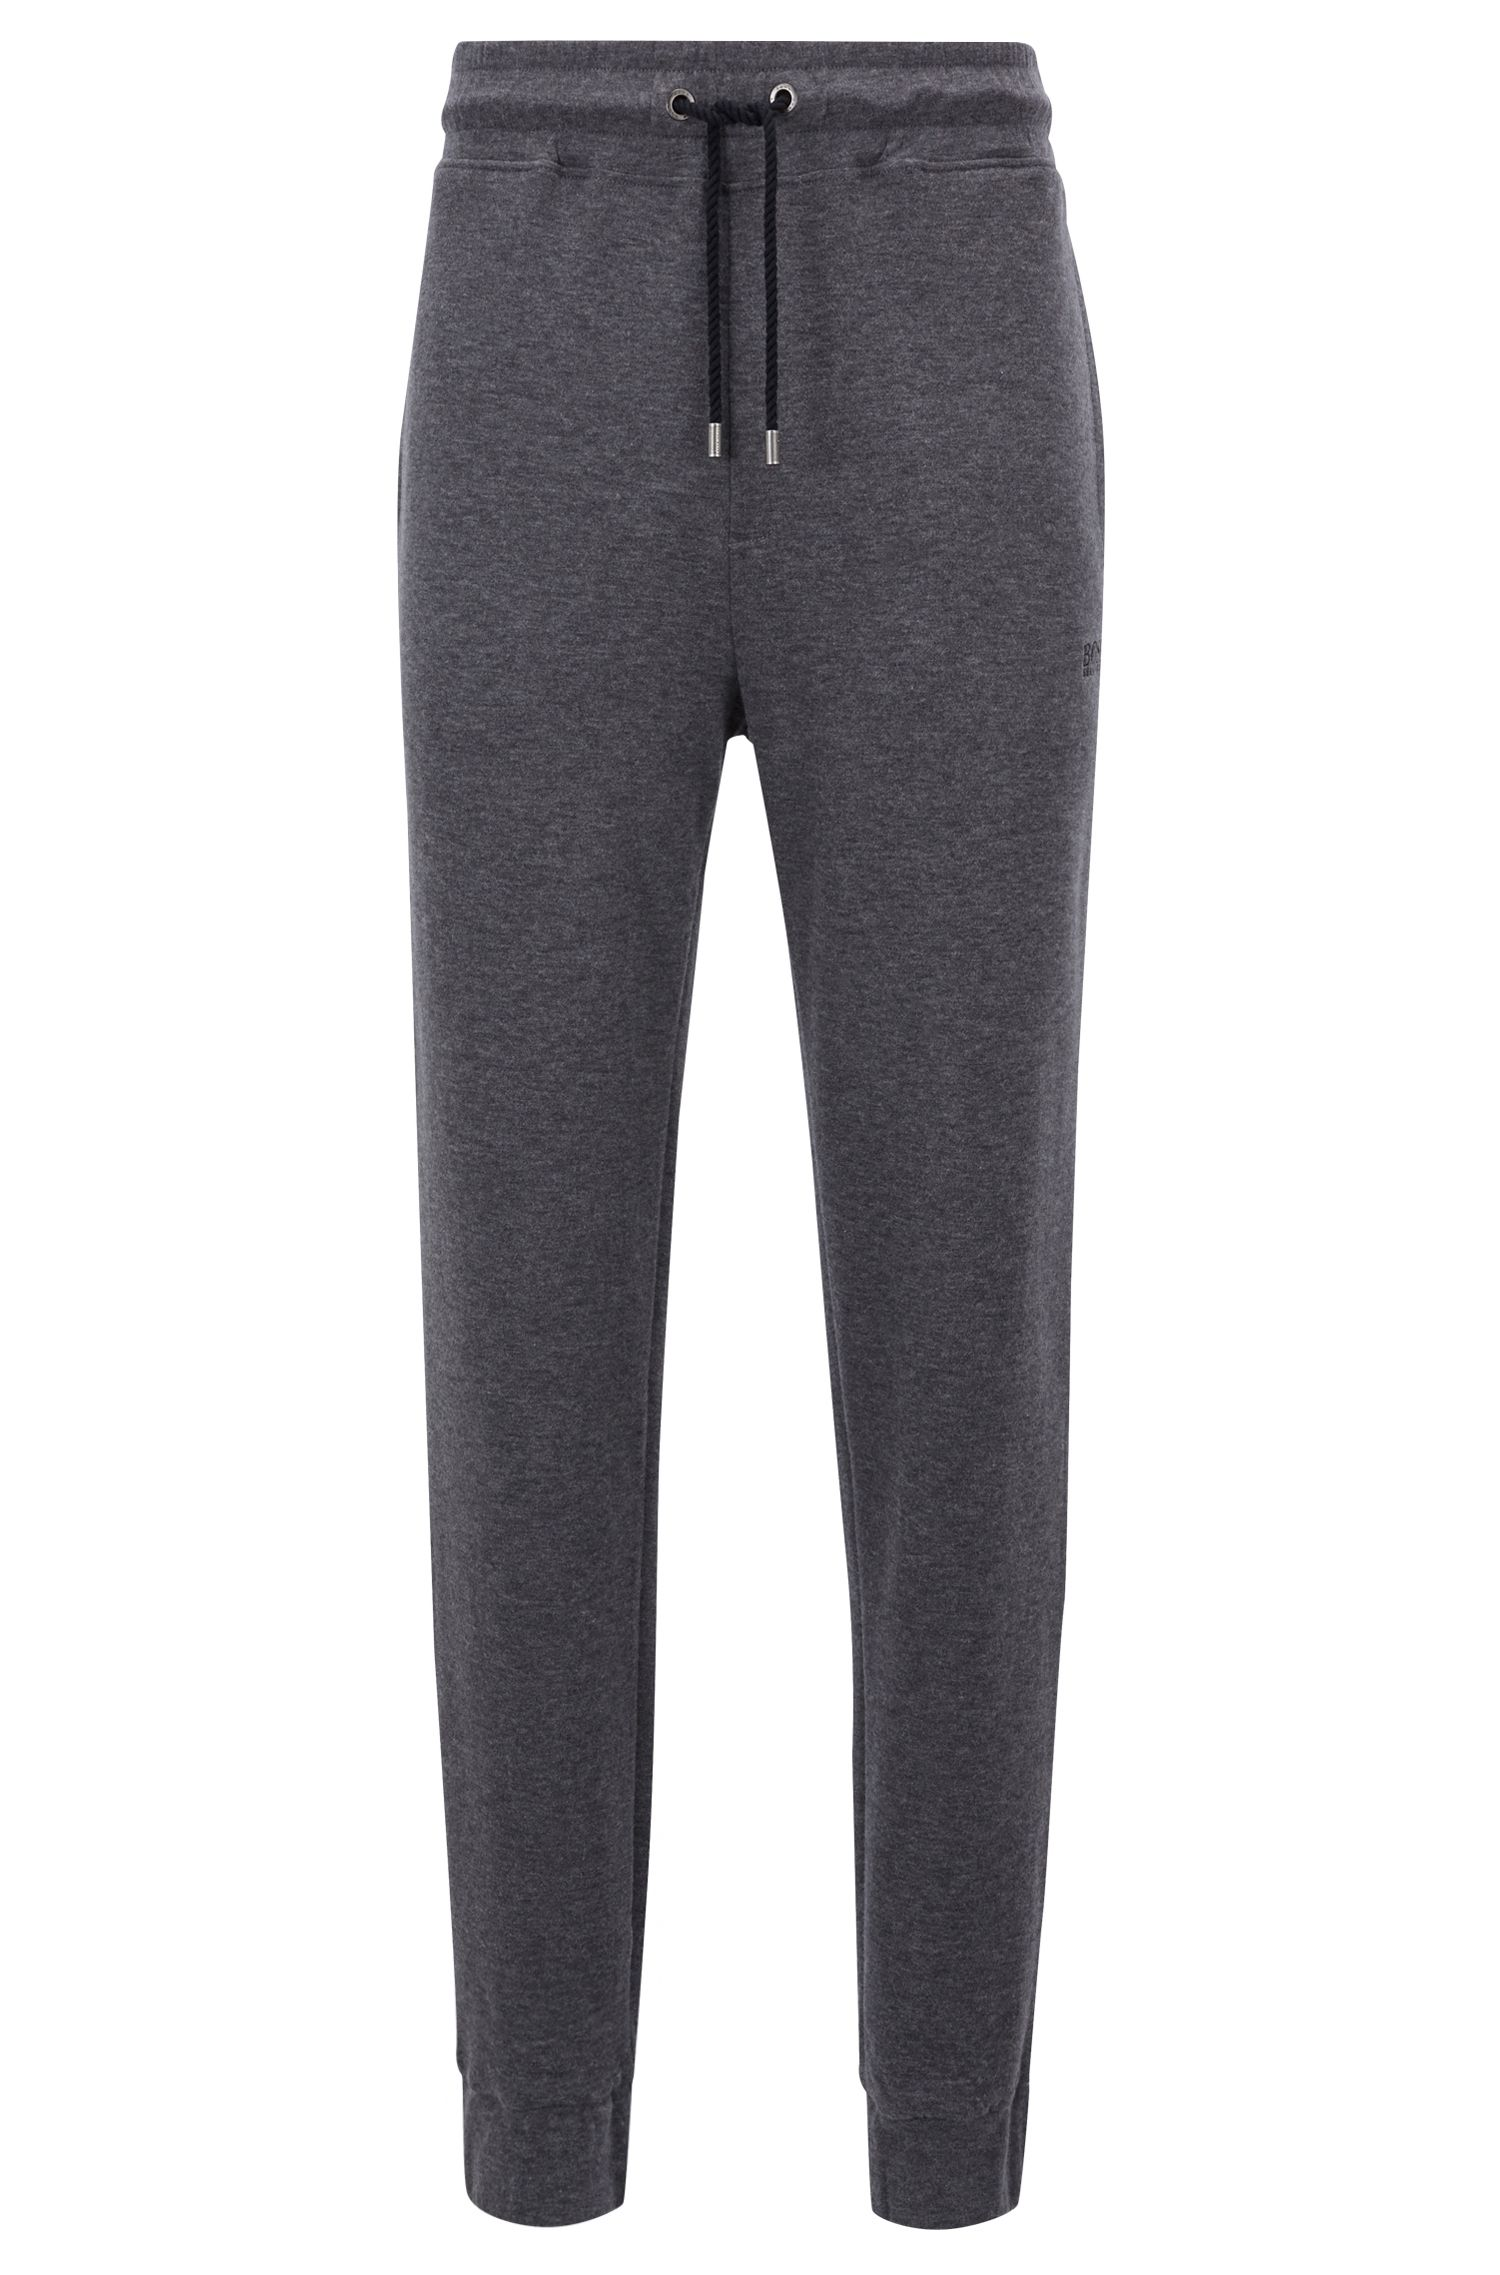 Cuffed loungewear pants in double-faced melange fabric, Grey